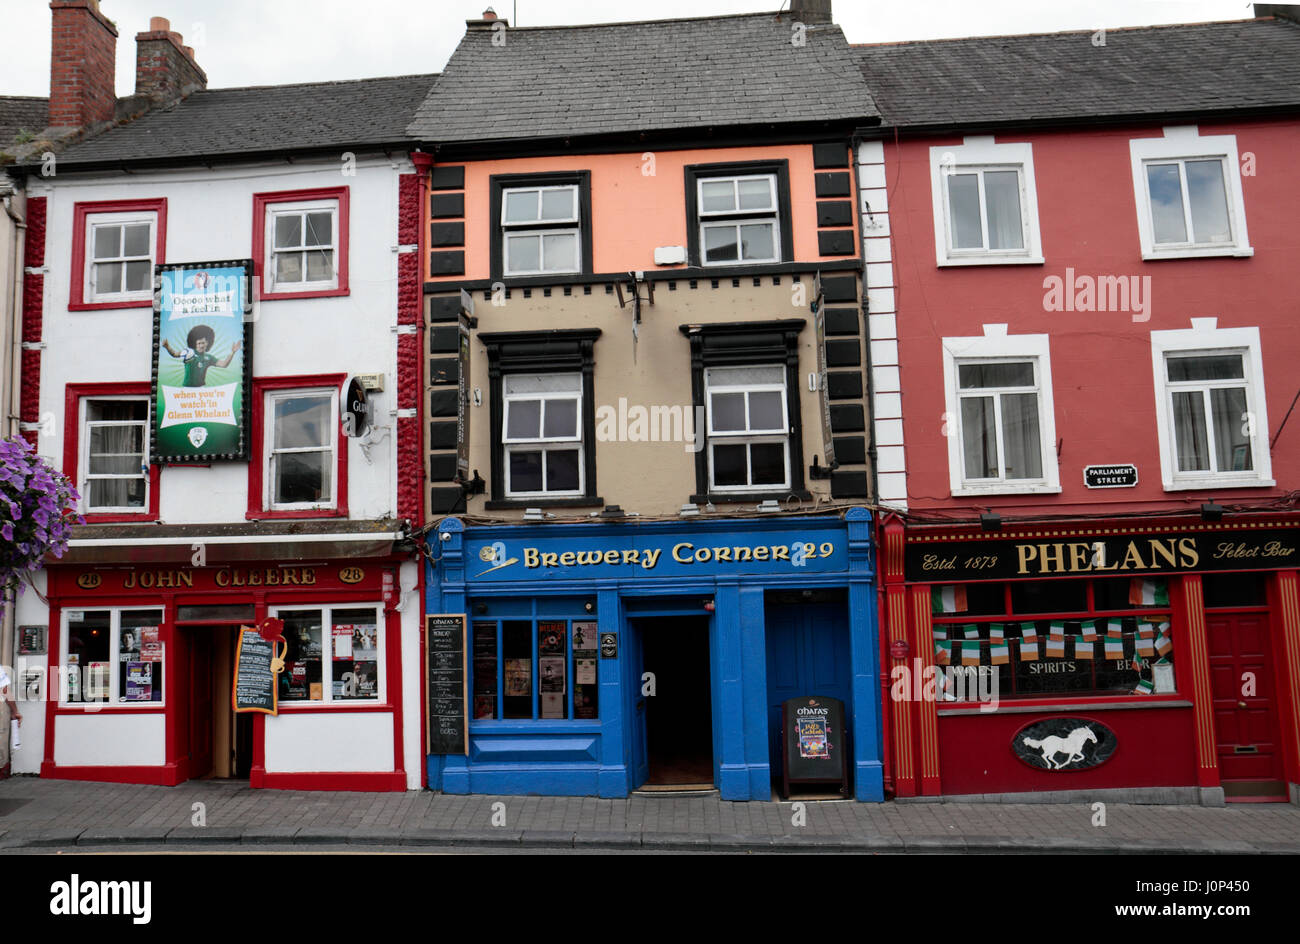 A line of colourful pubs on Brewery Corner, Parliament Street in the city of Kilkenny, County Kilkenny, Ireland, - Stock Image